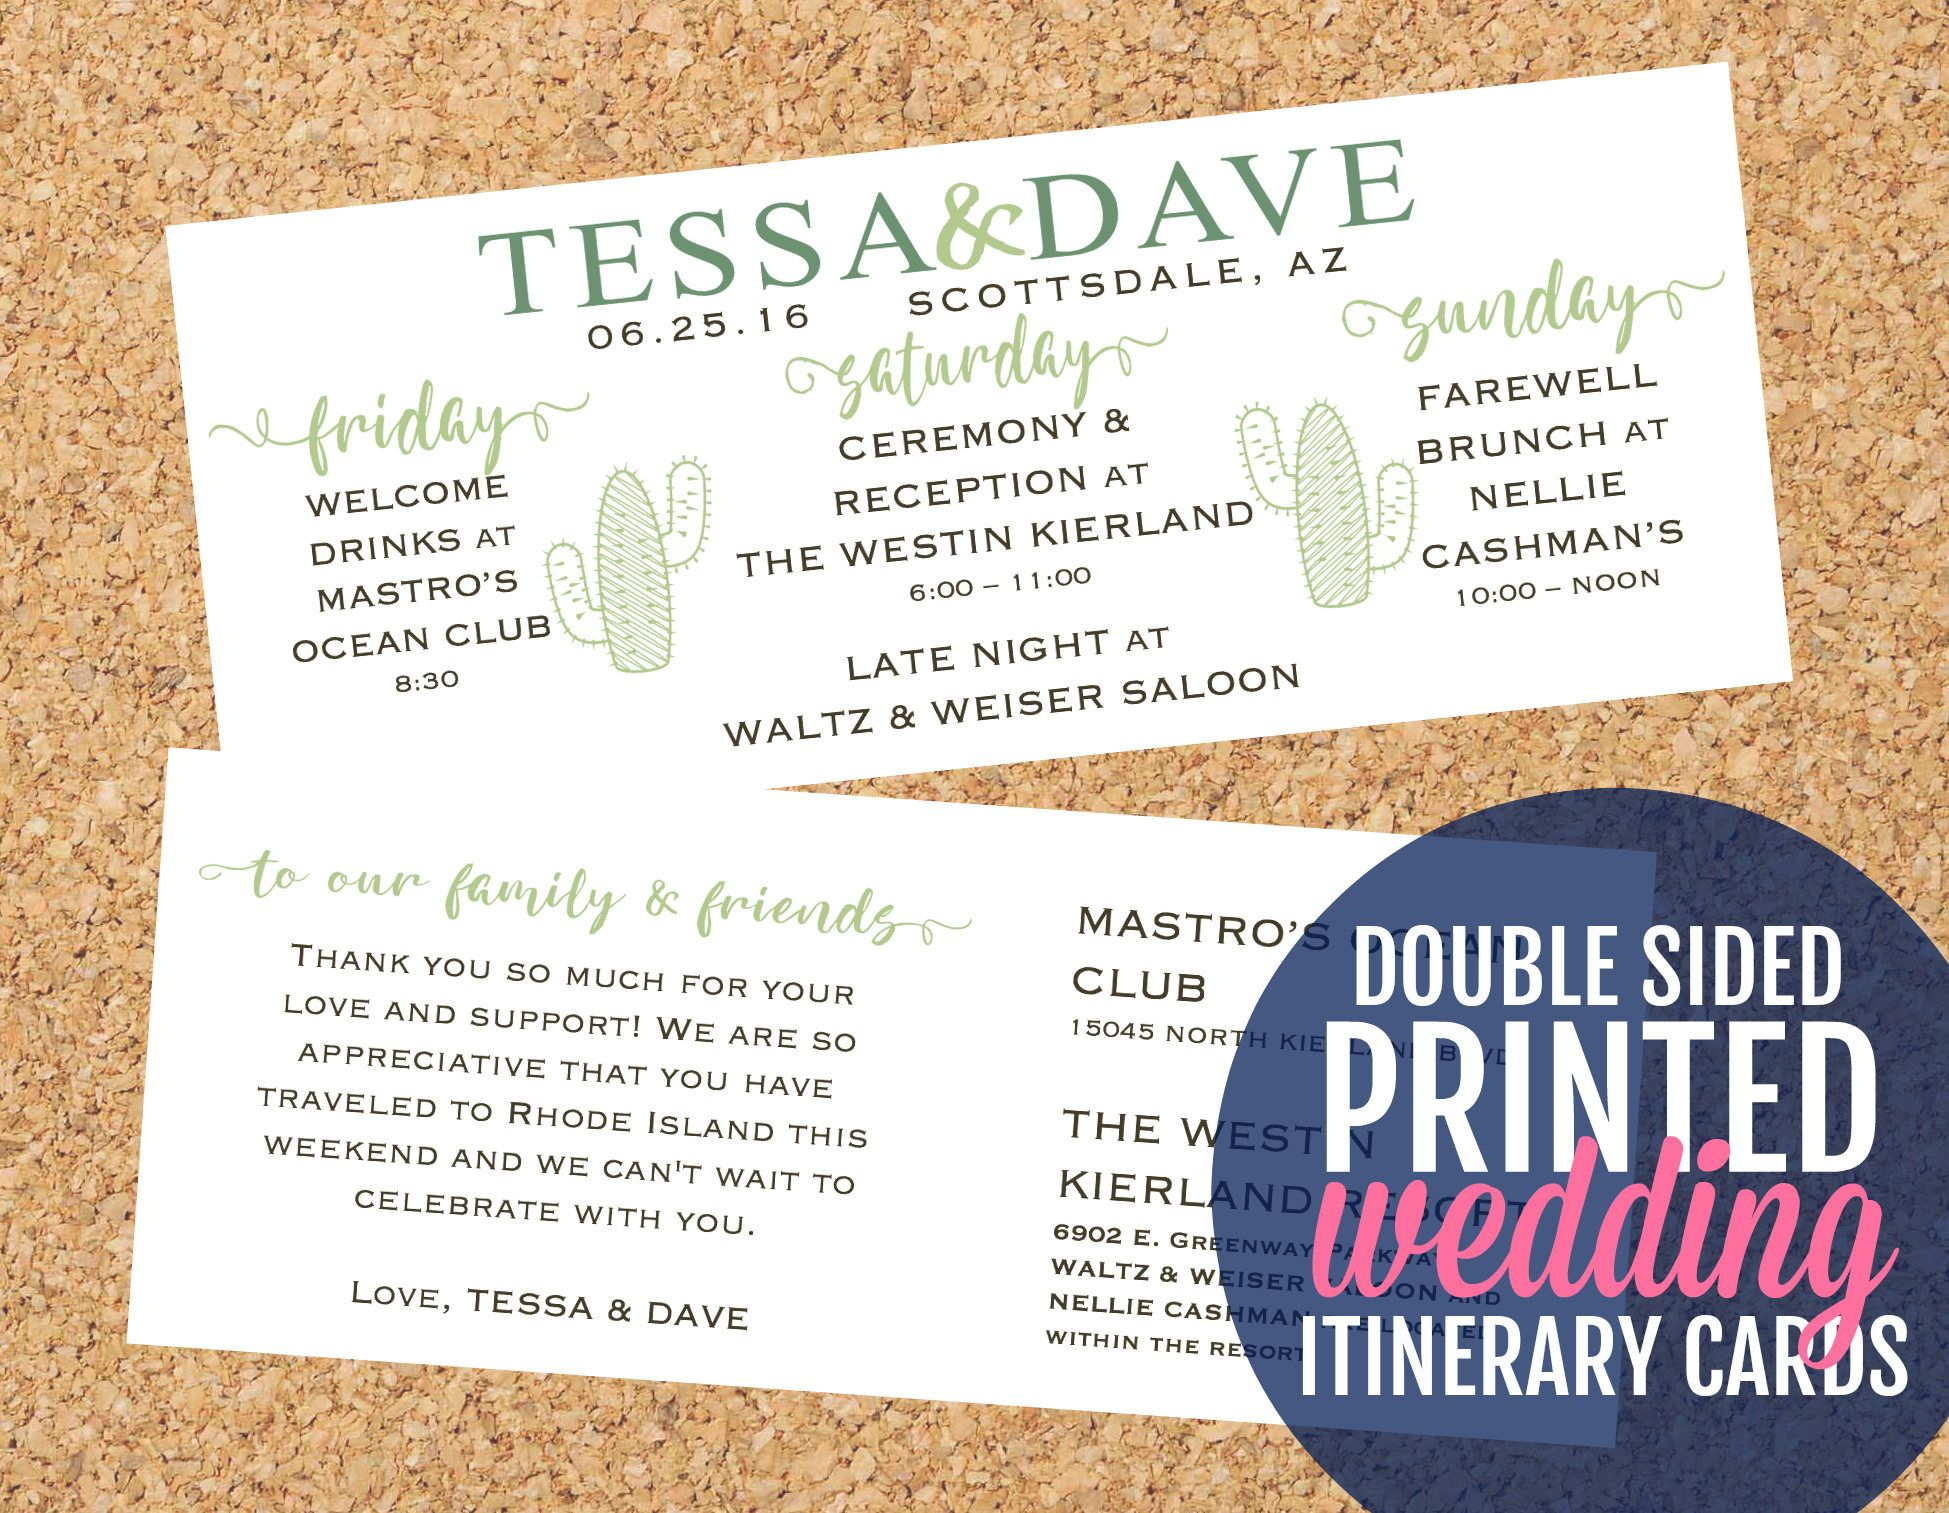 Cactus Wedding Itinerary Cards Double Sided Southwest Timeline Welcome Bag Inserts Custom Succulent Theme Schedule